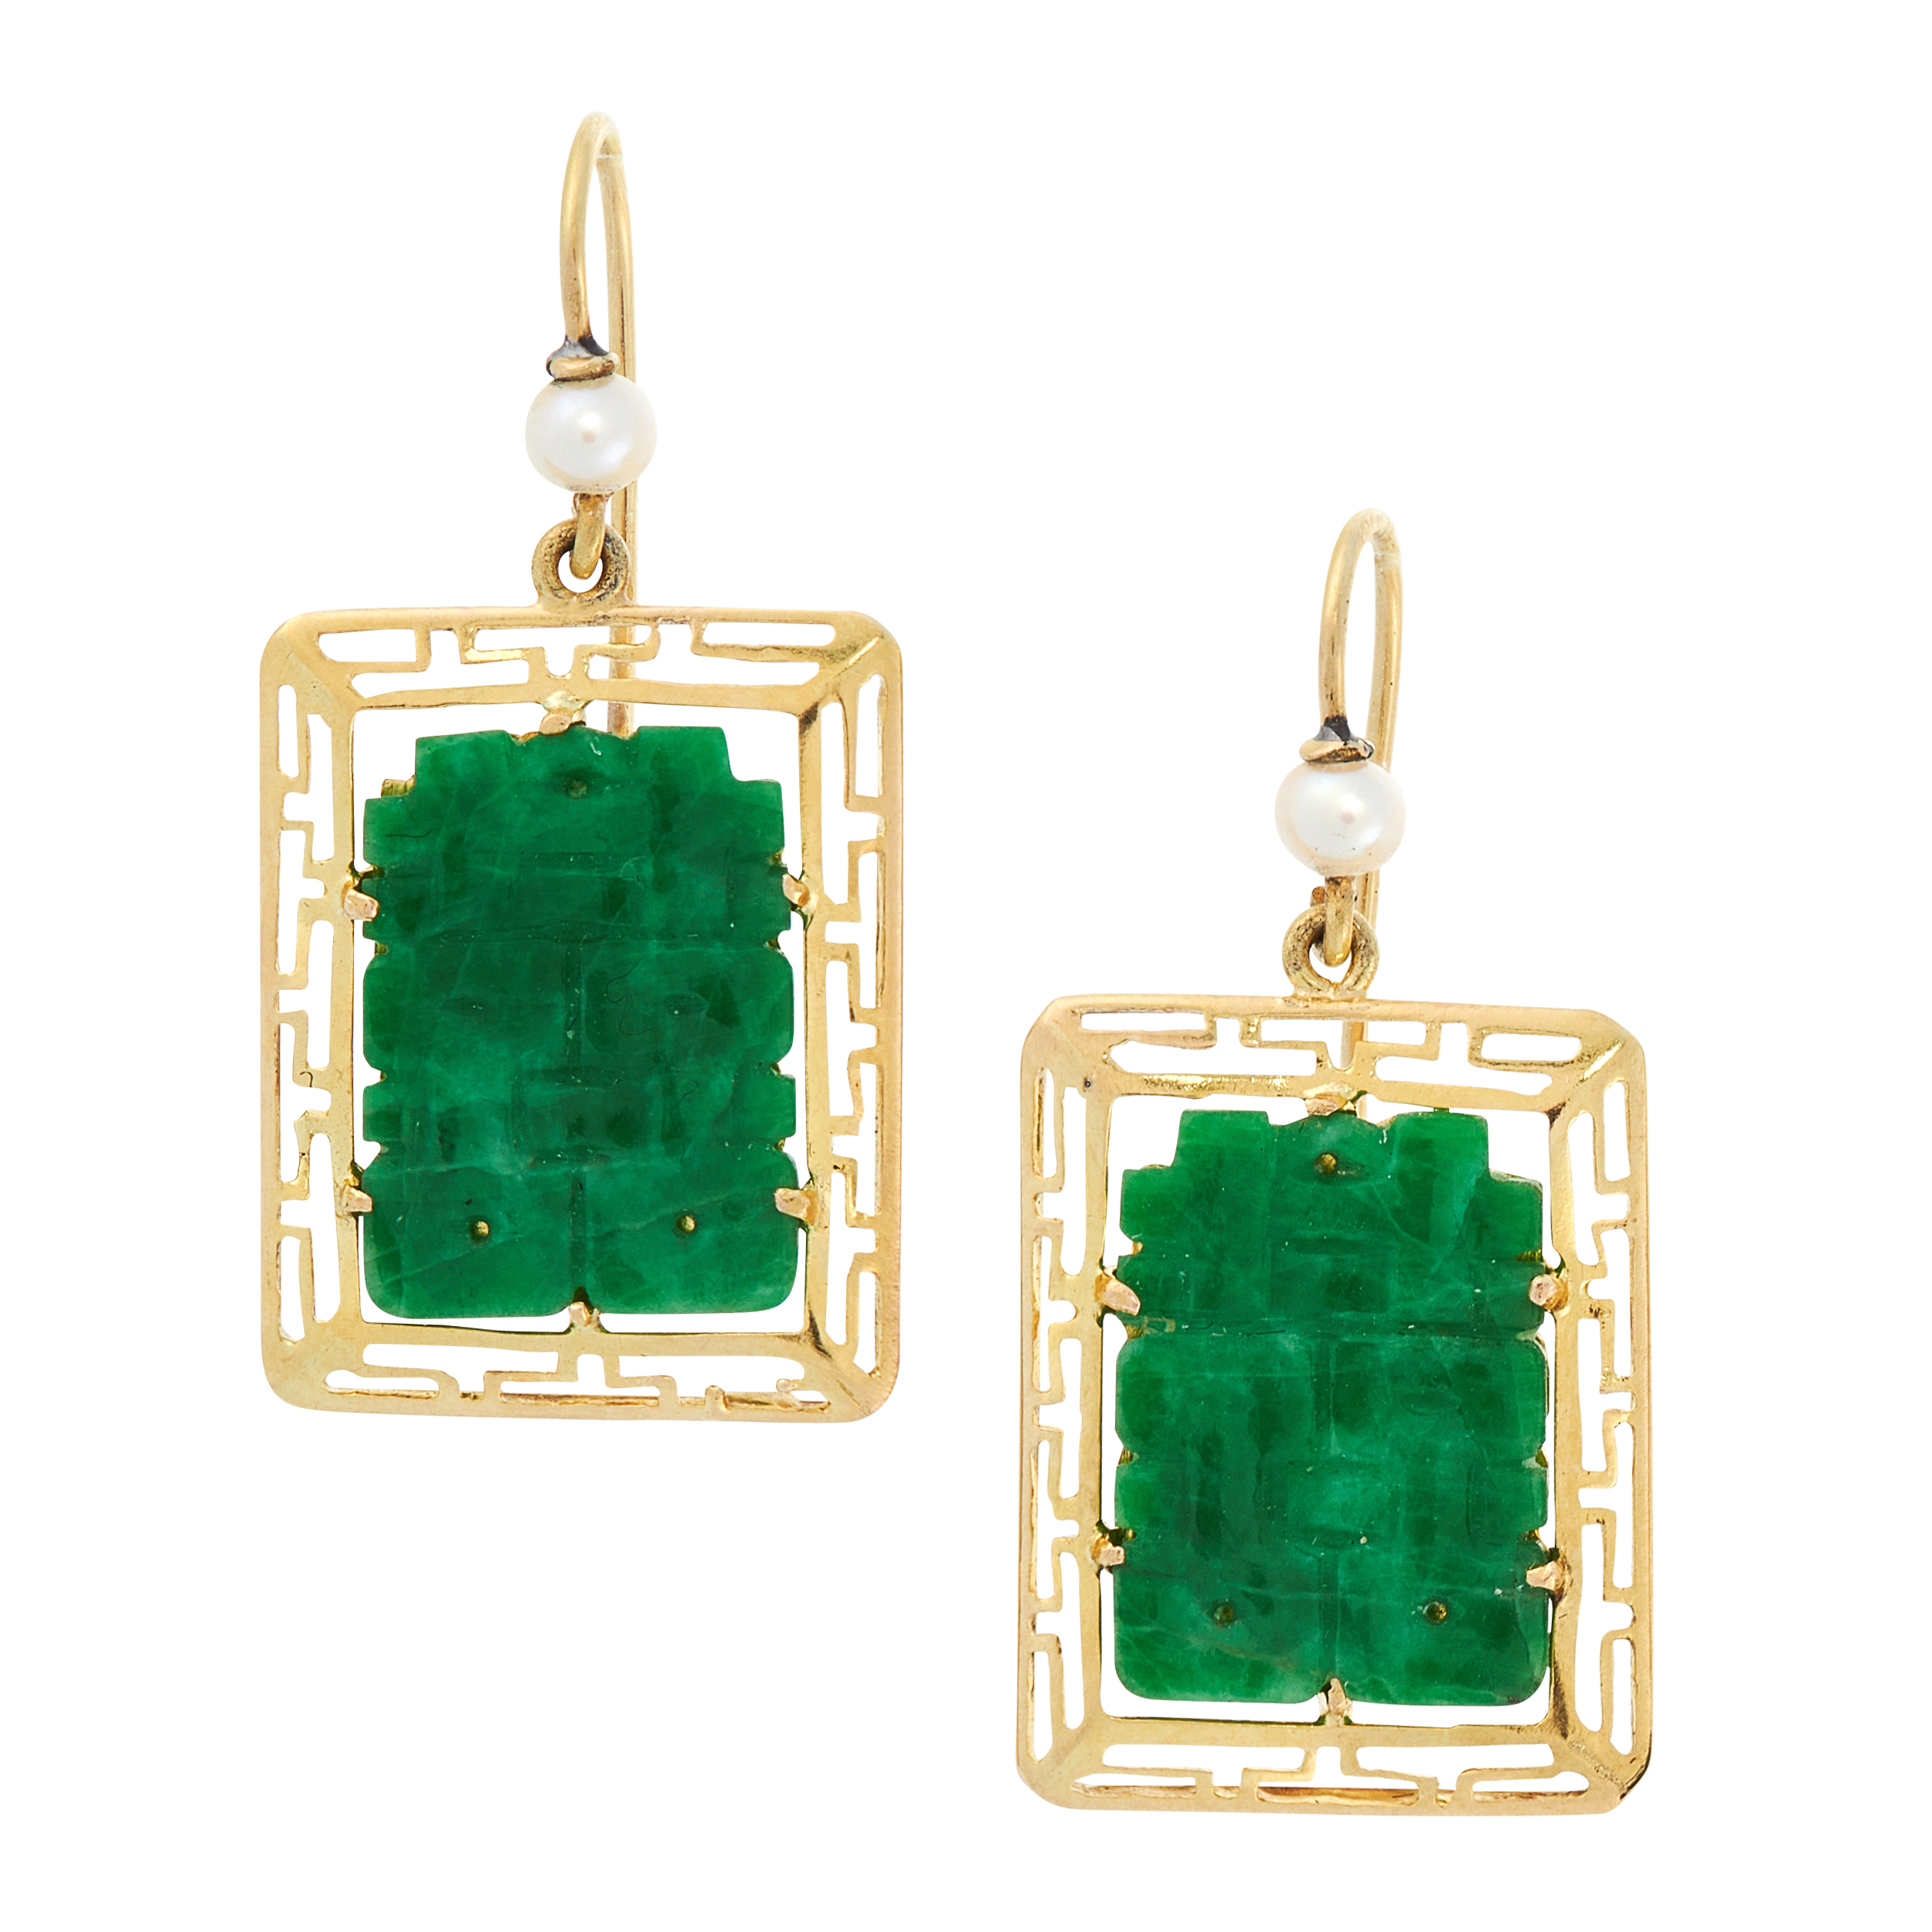 A PAIR OF PEARL AND JADE DROP EARRINGS in yellow gold, each set with a pearl above a rectangular